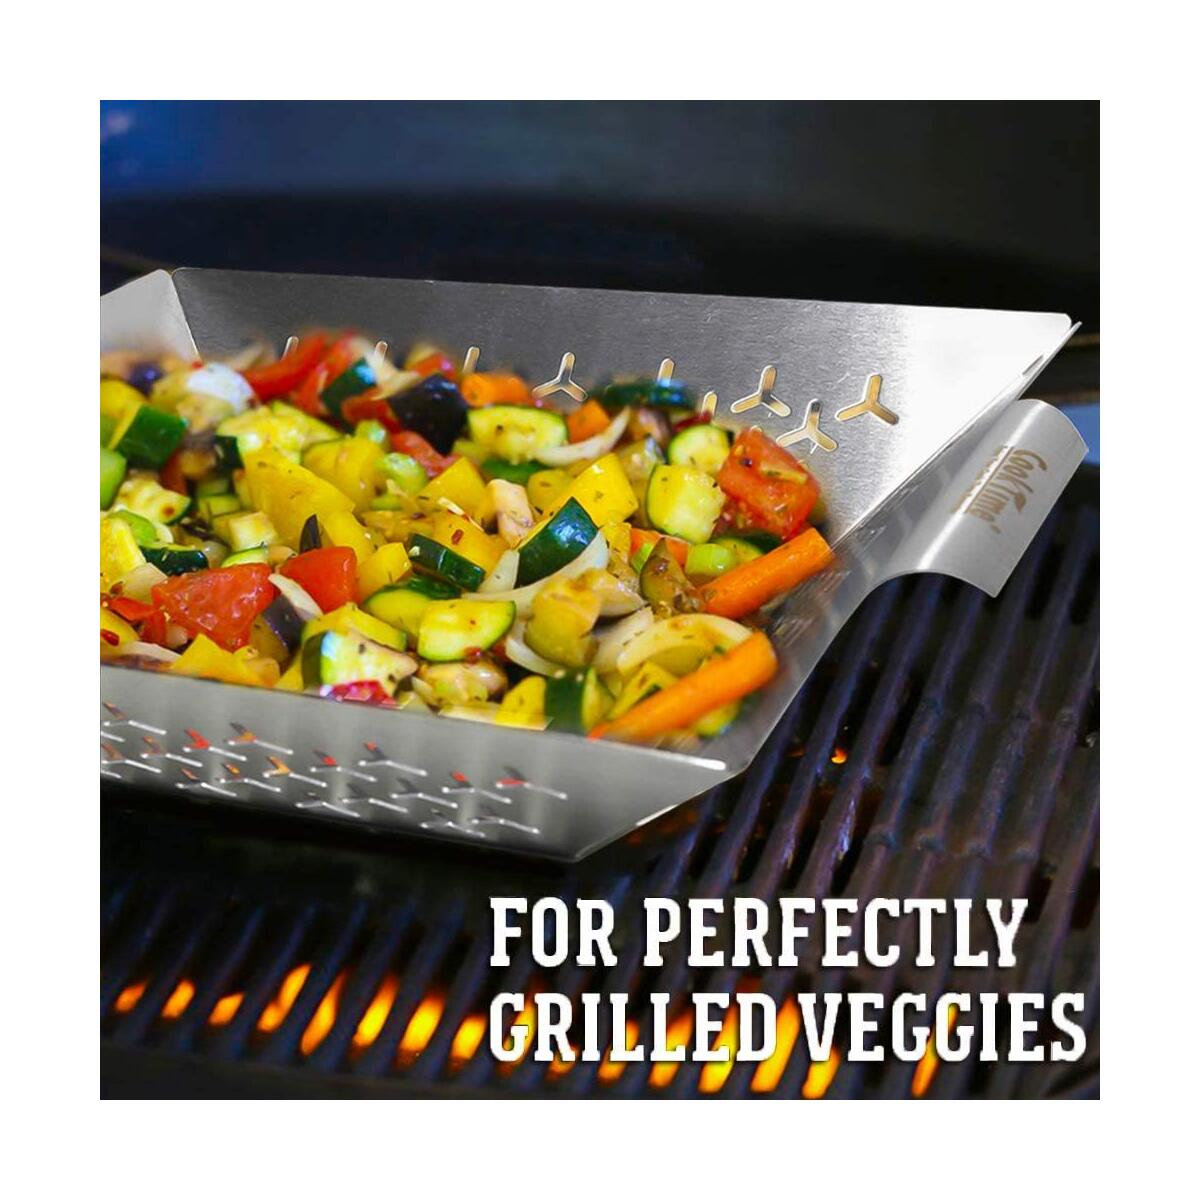 Cook Time BBQ Grill Vegetable Basket Stainless Steel Grilling Woks-Non Stick Large Veggie Barbecue Accessory for Outdoor Grill,Heavy Duty 1.5X Thicker,13.75X12X2.5inches